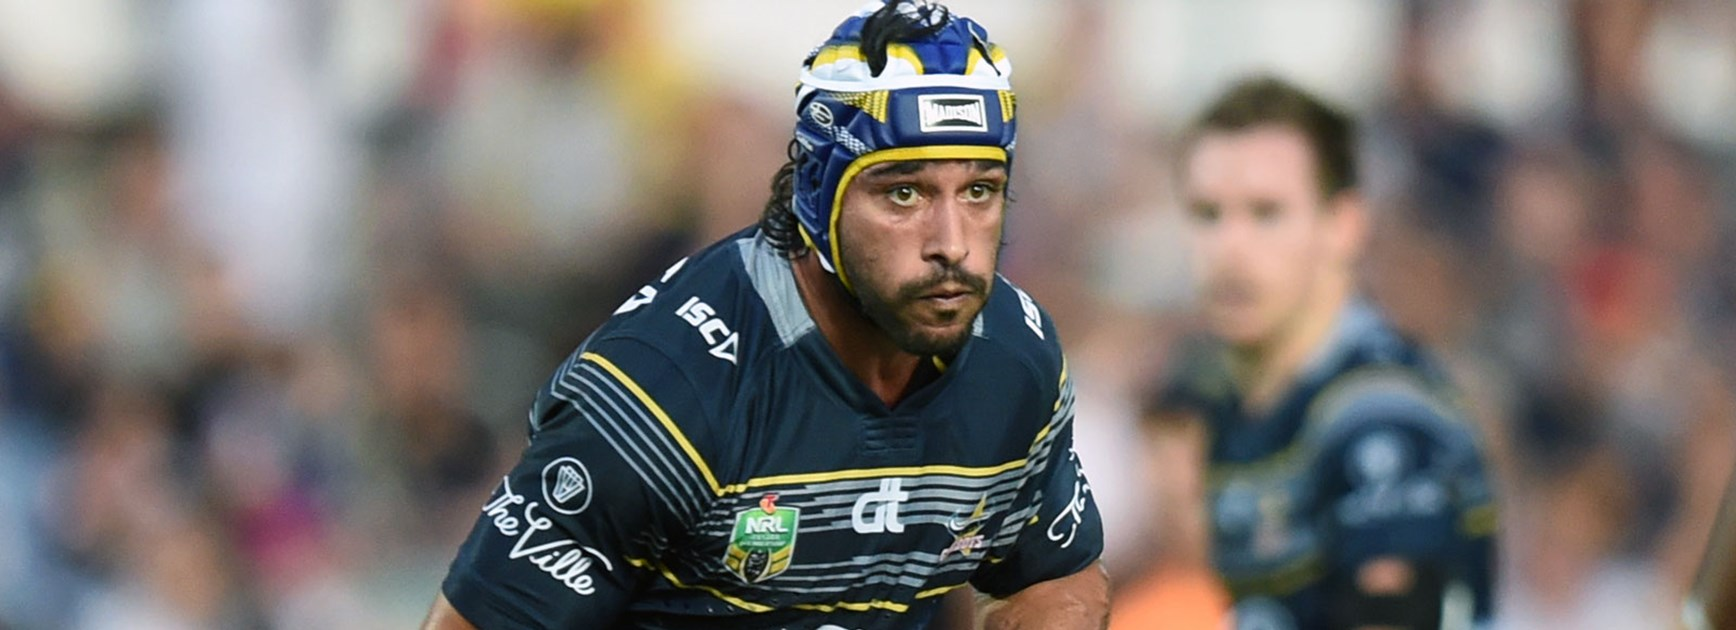 Cowboys halfback Johnathan Thurston against the Titans in Round 26.